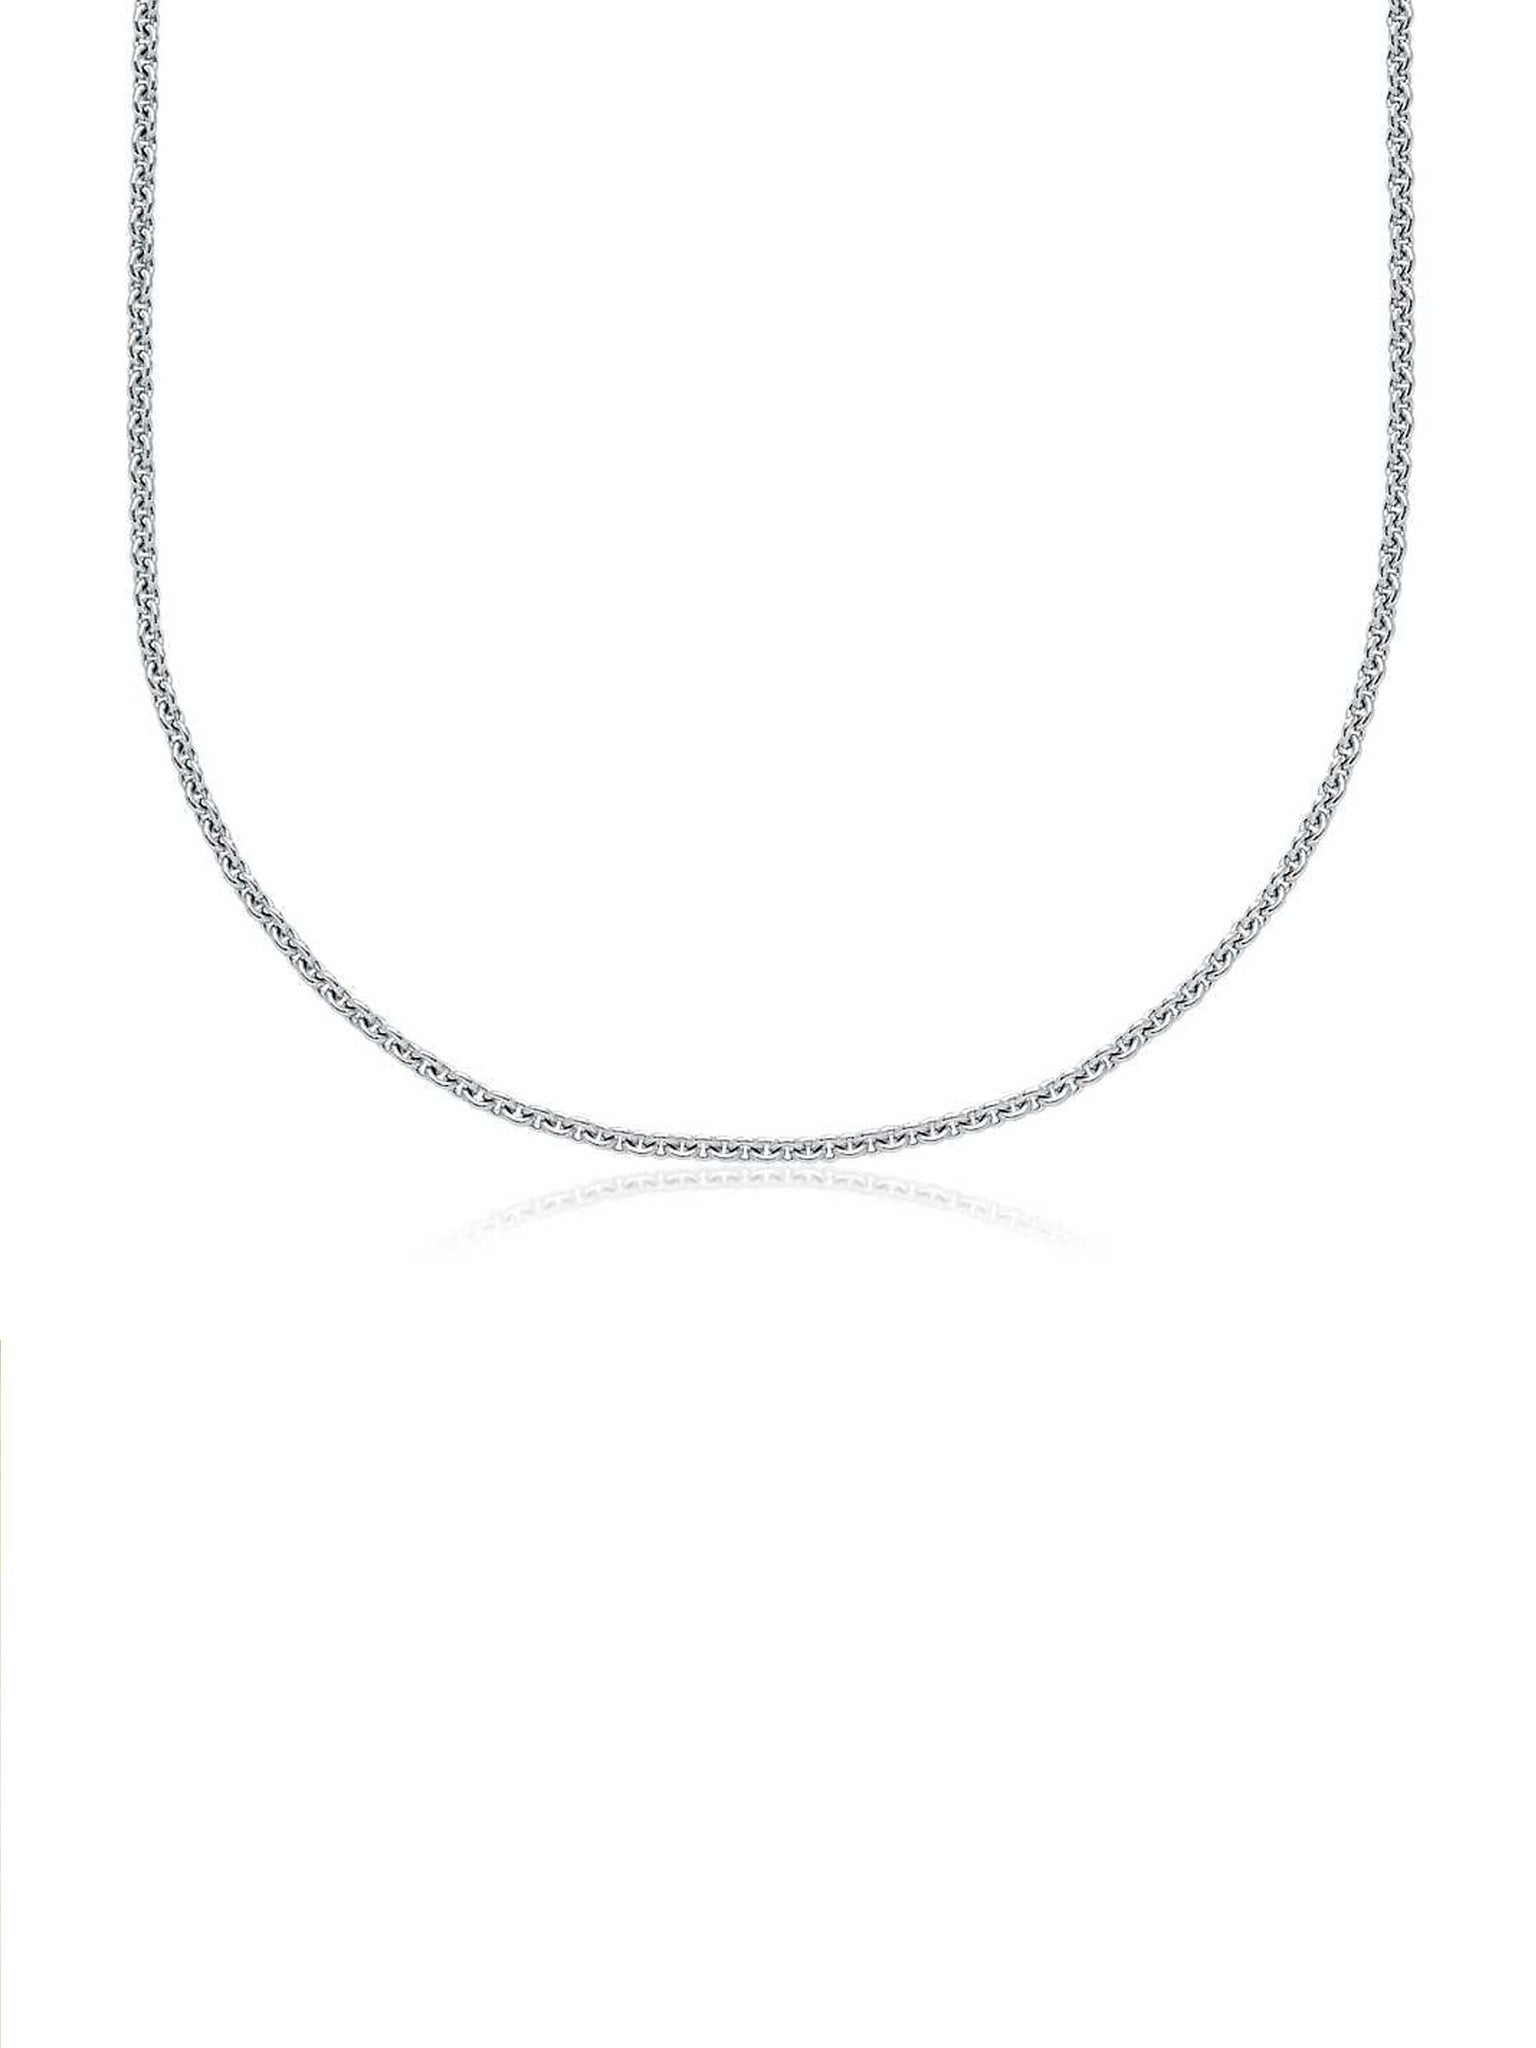 Single Sterling Silver chain